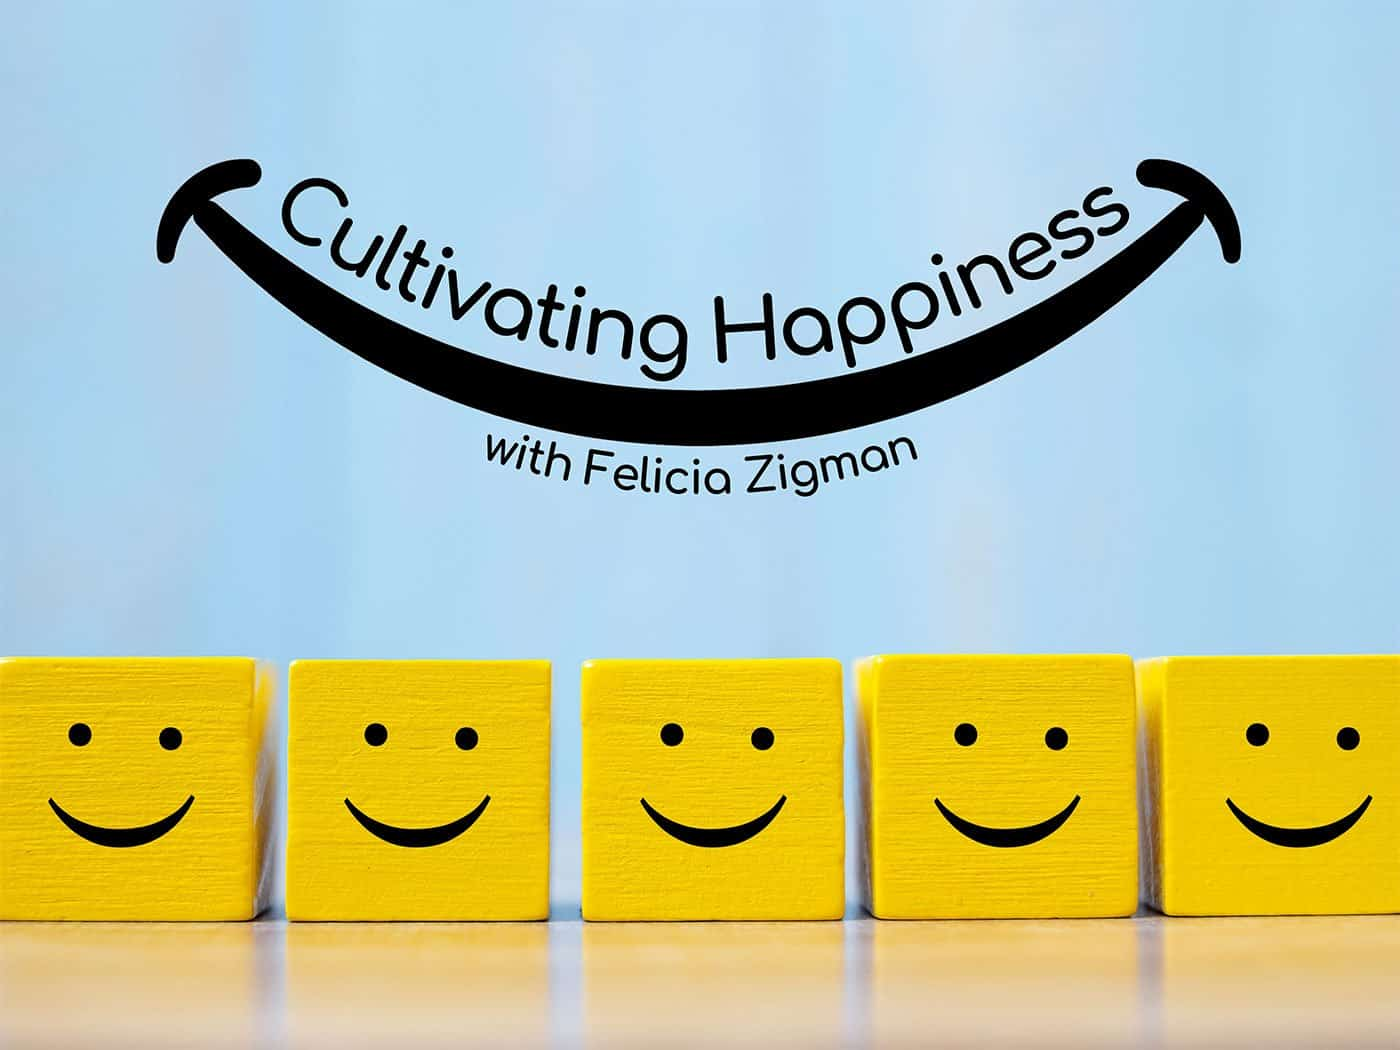 Cultivating Hapiness